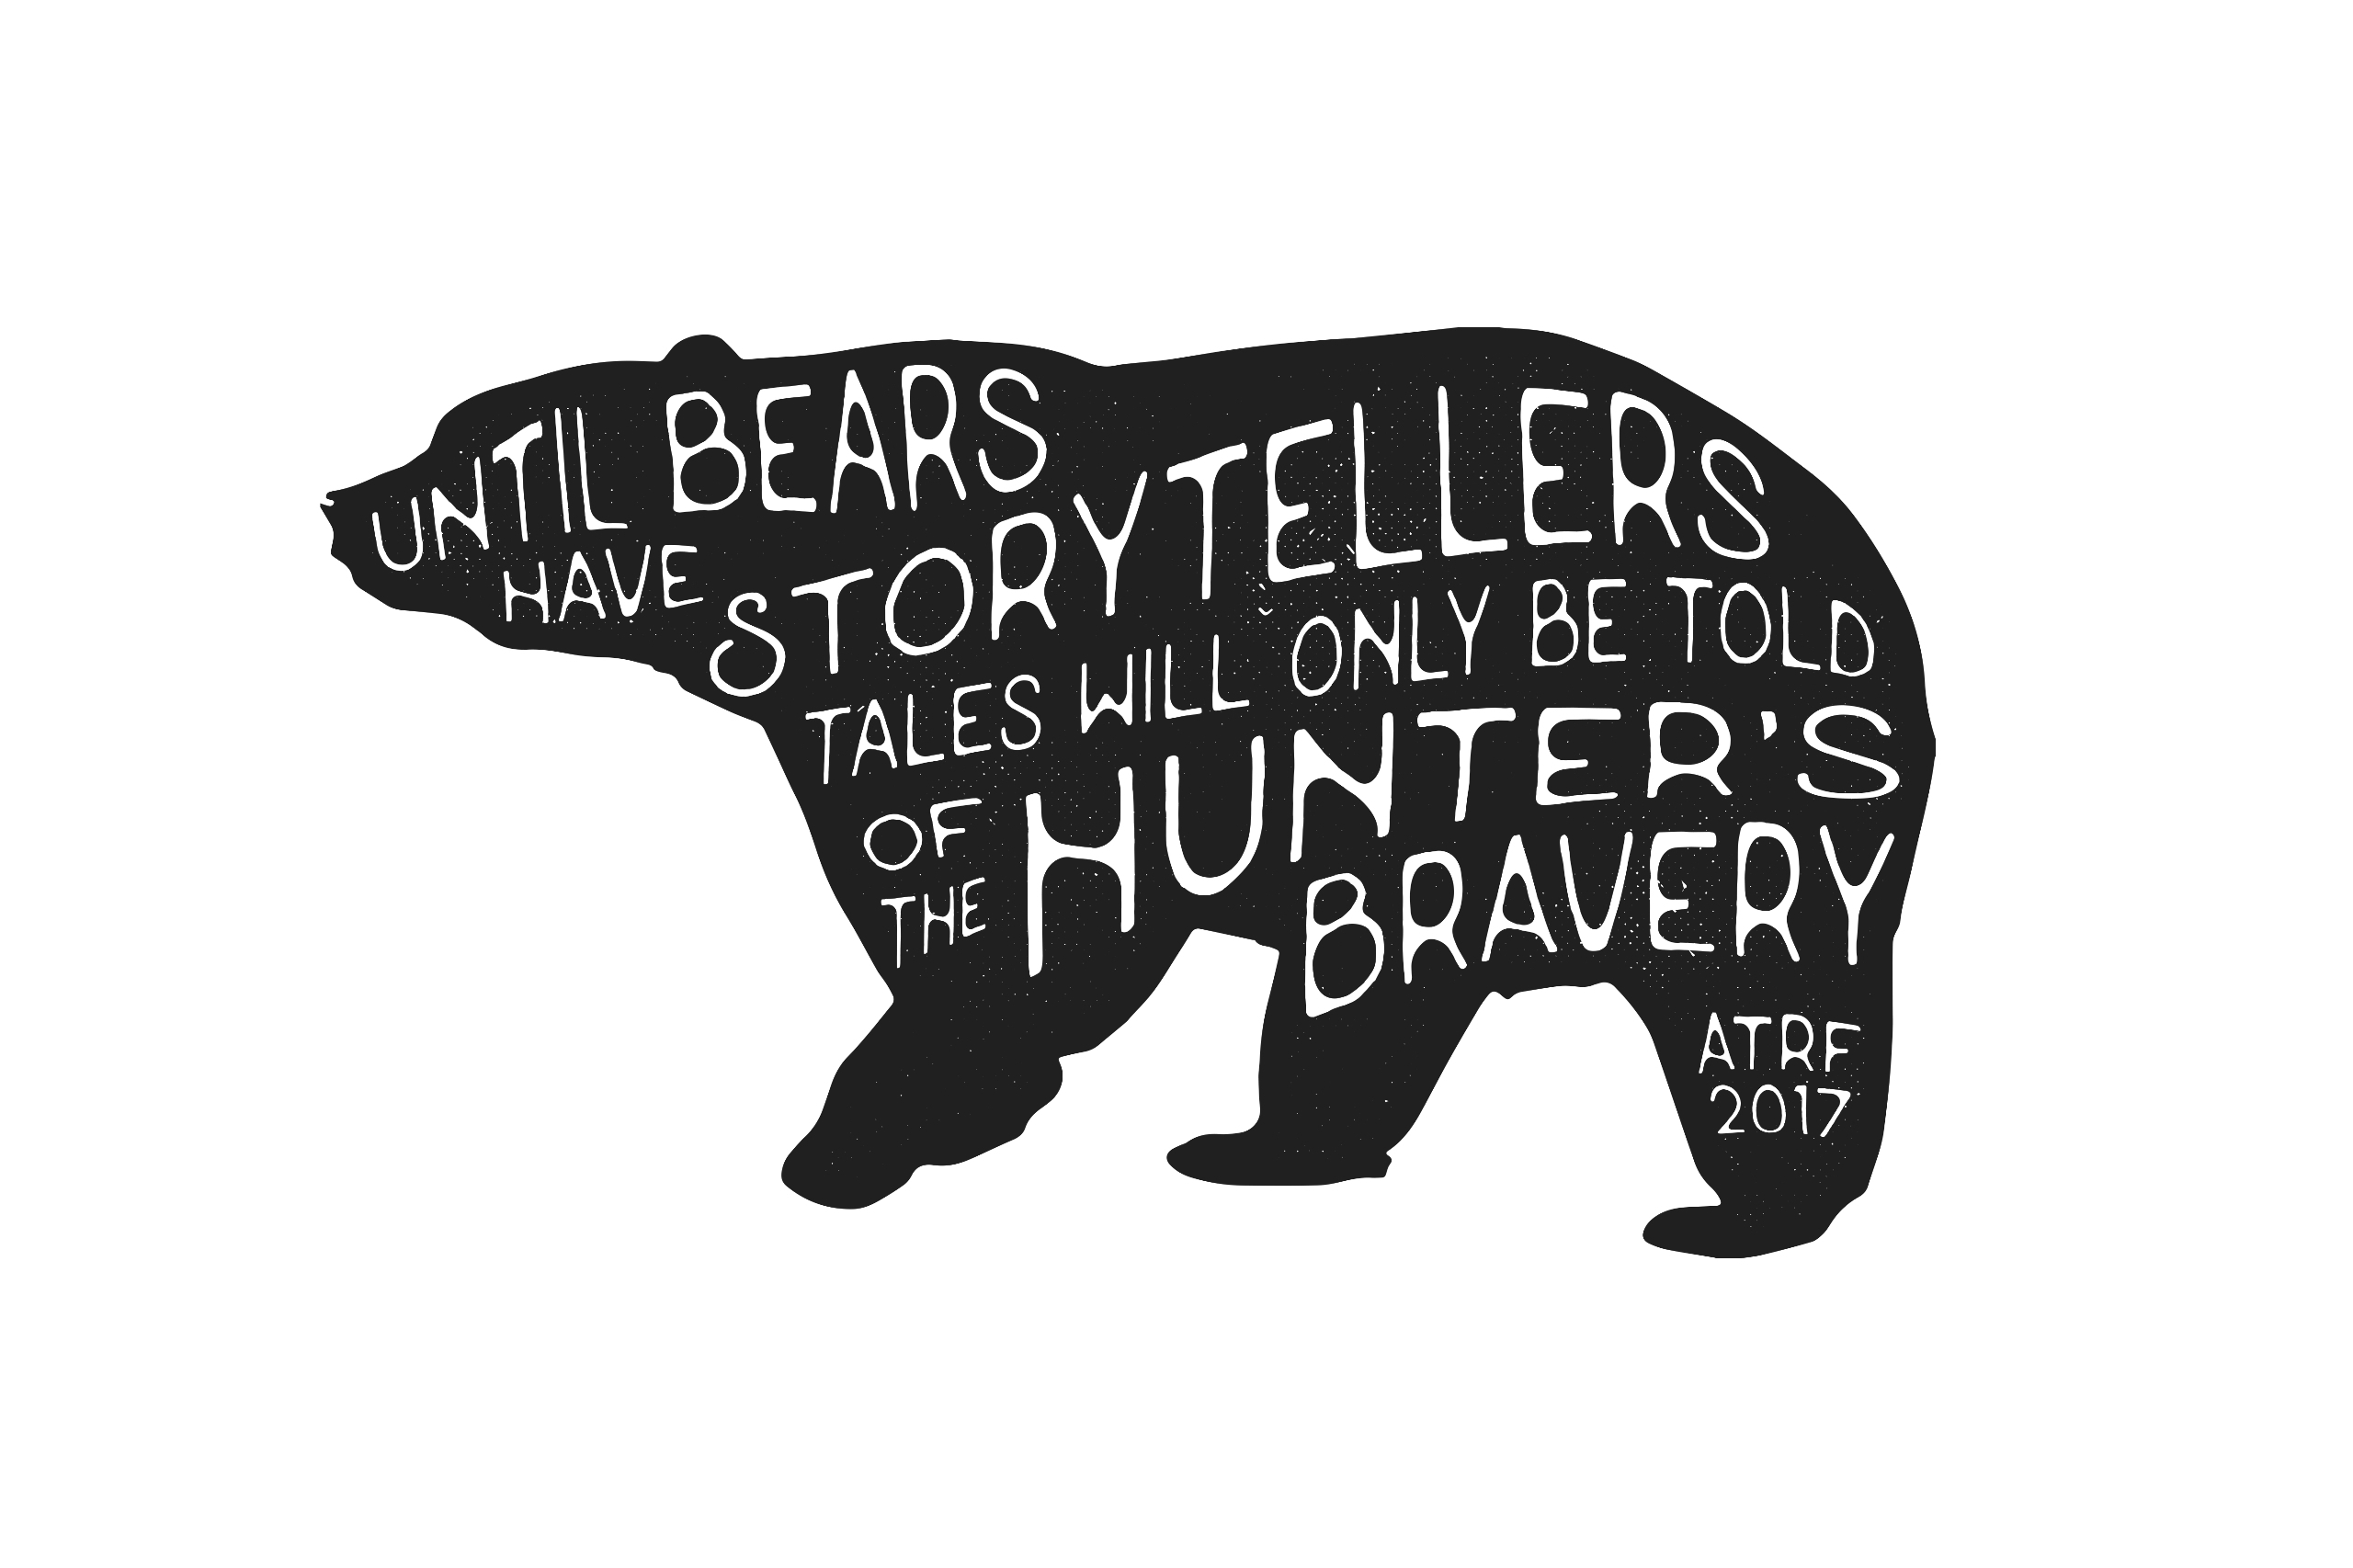 bears storytellers, tales told  - jonathonreed | ello